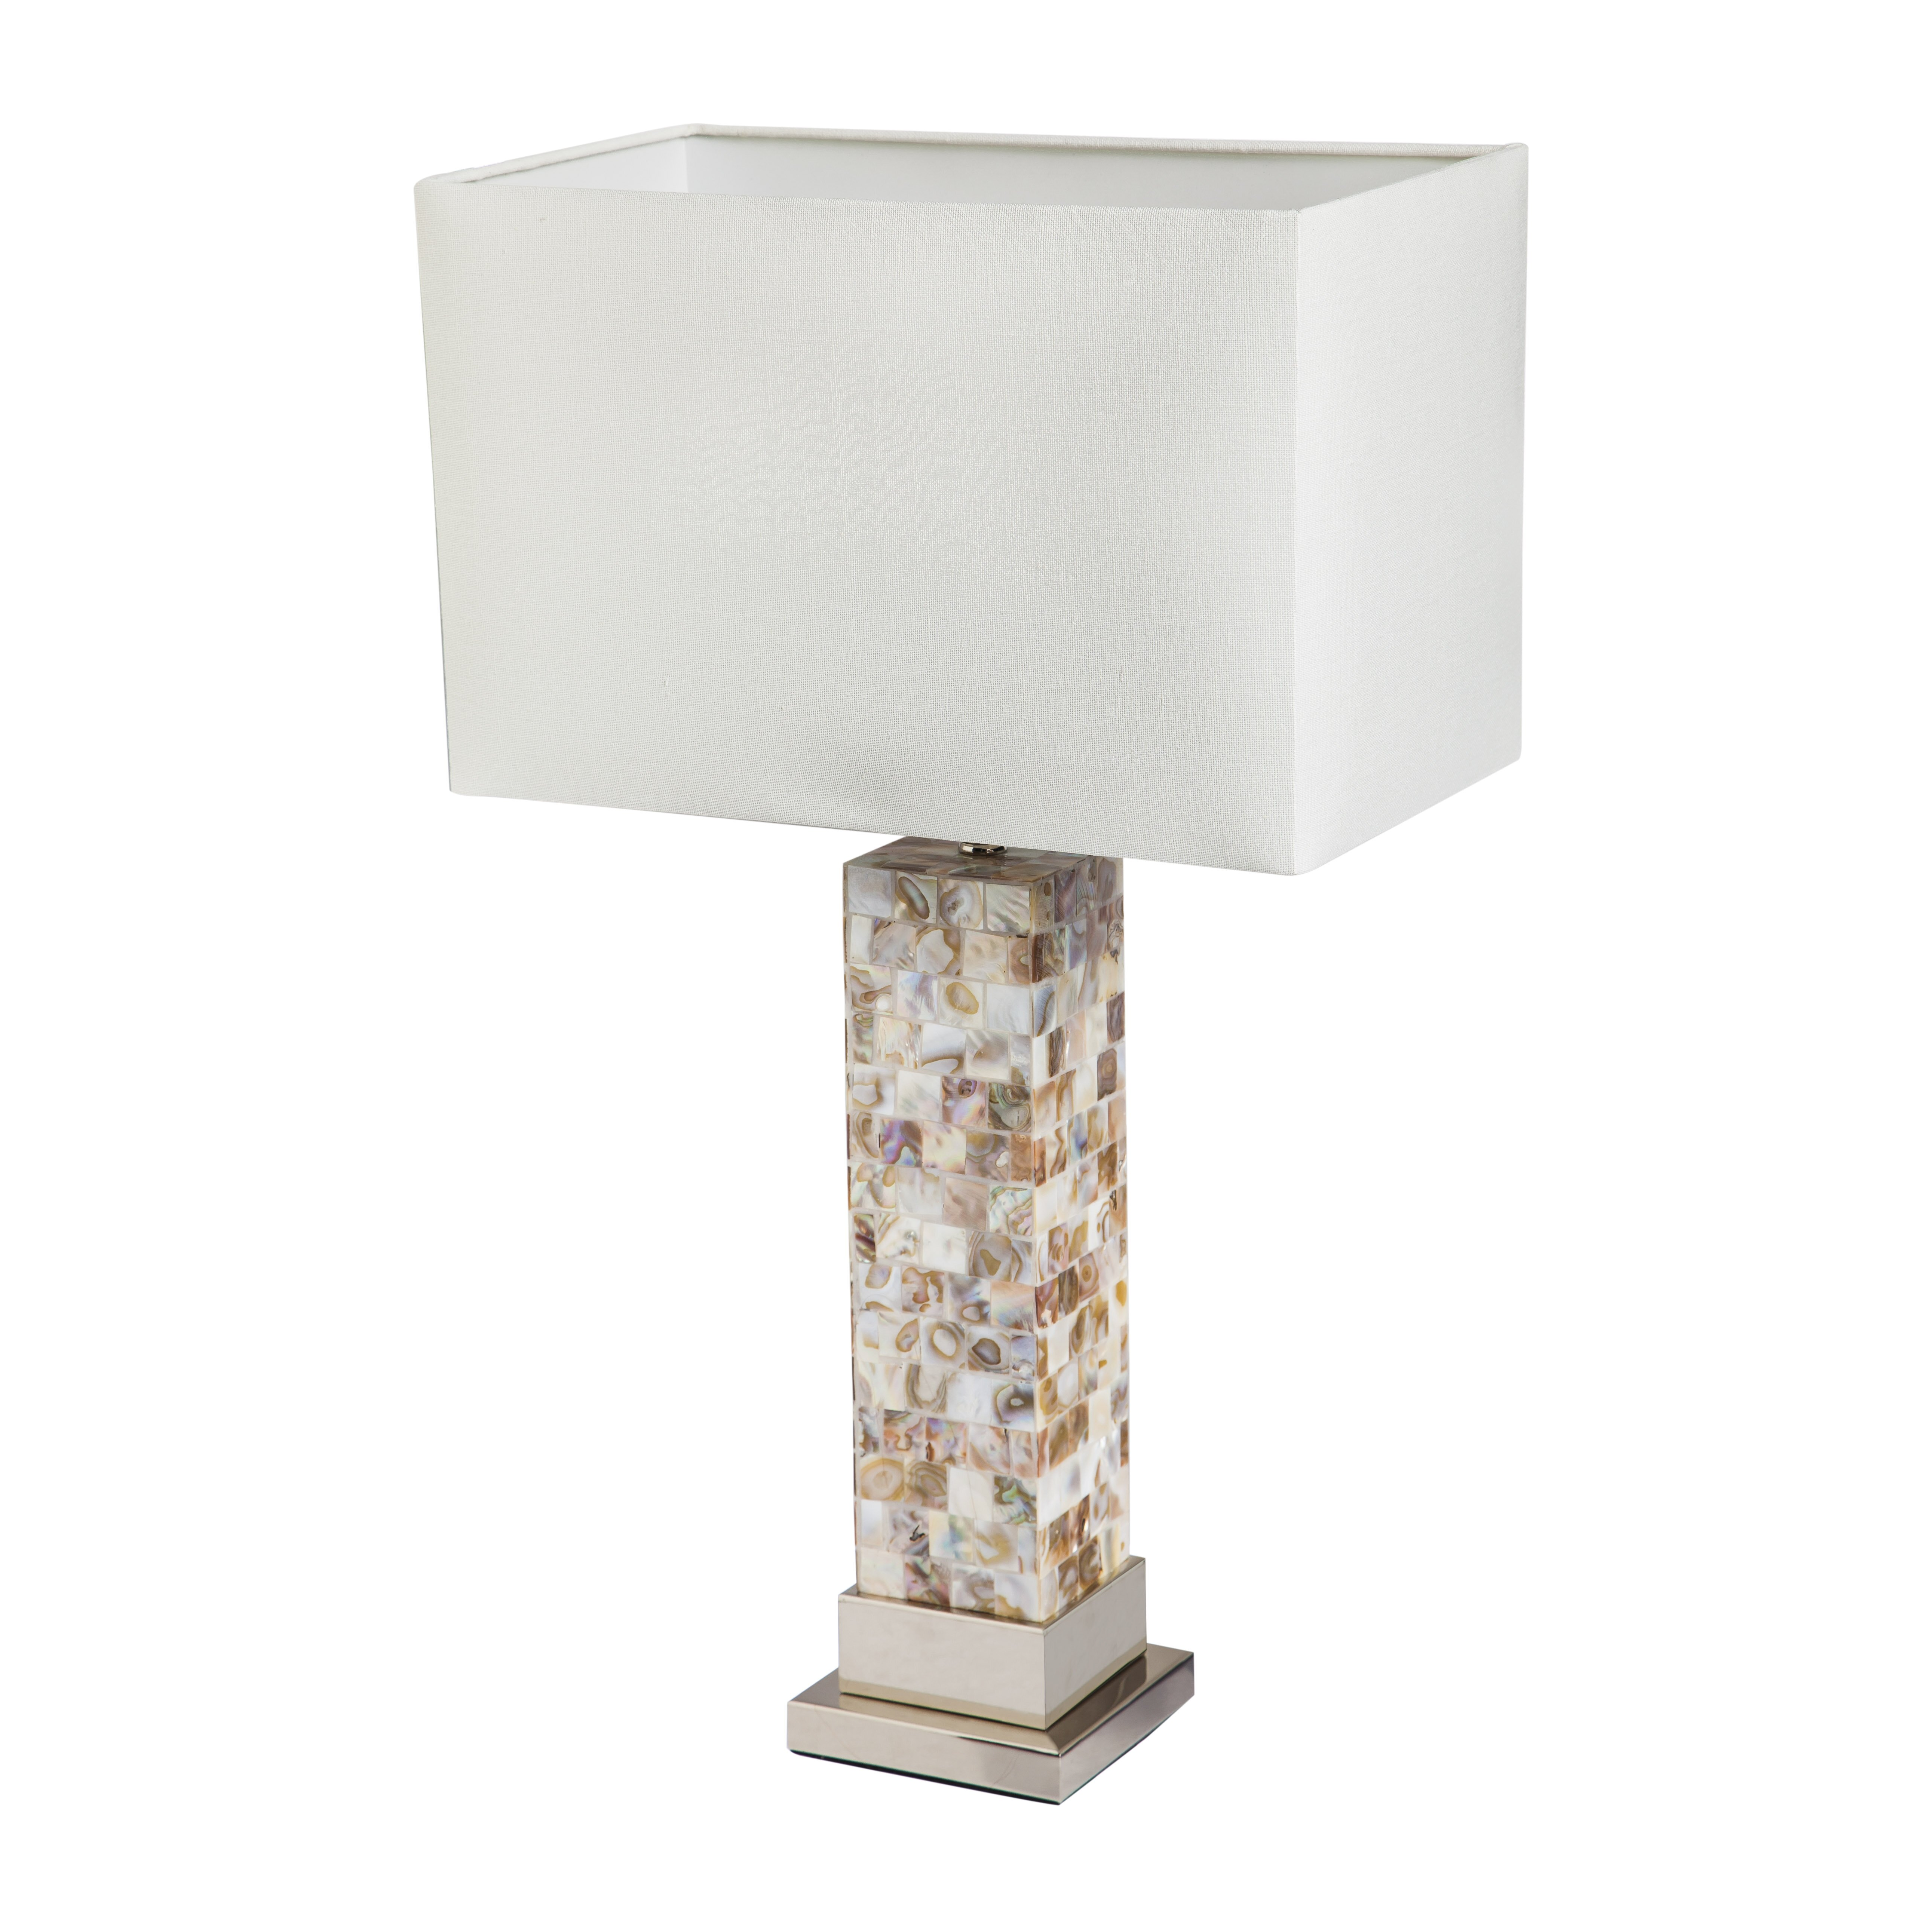 24 h table lamp with rectangular shade by evergreen enterprises inc. Black Bedroom Furniture Sets. Home Design Ideas